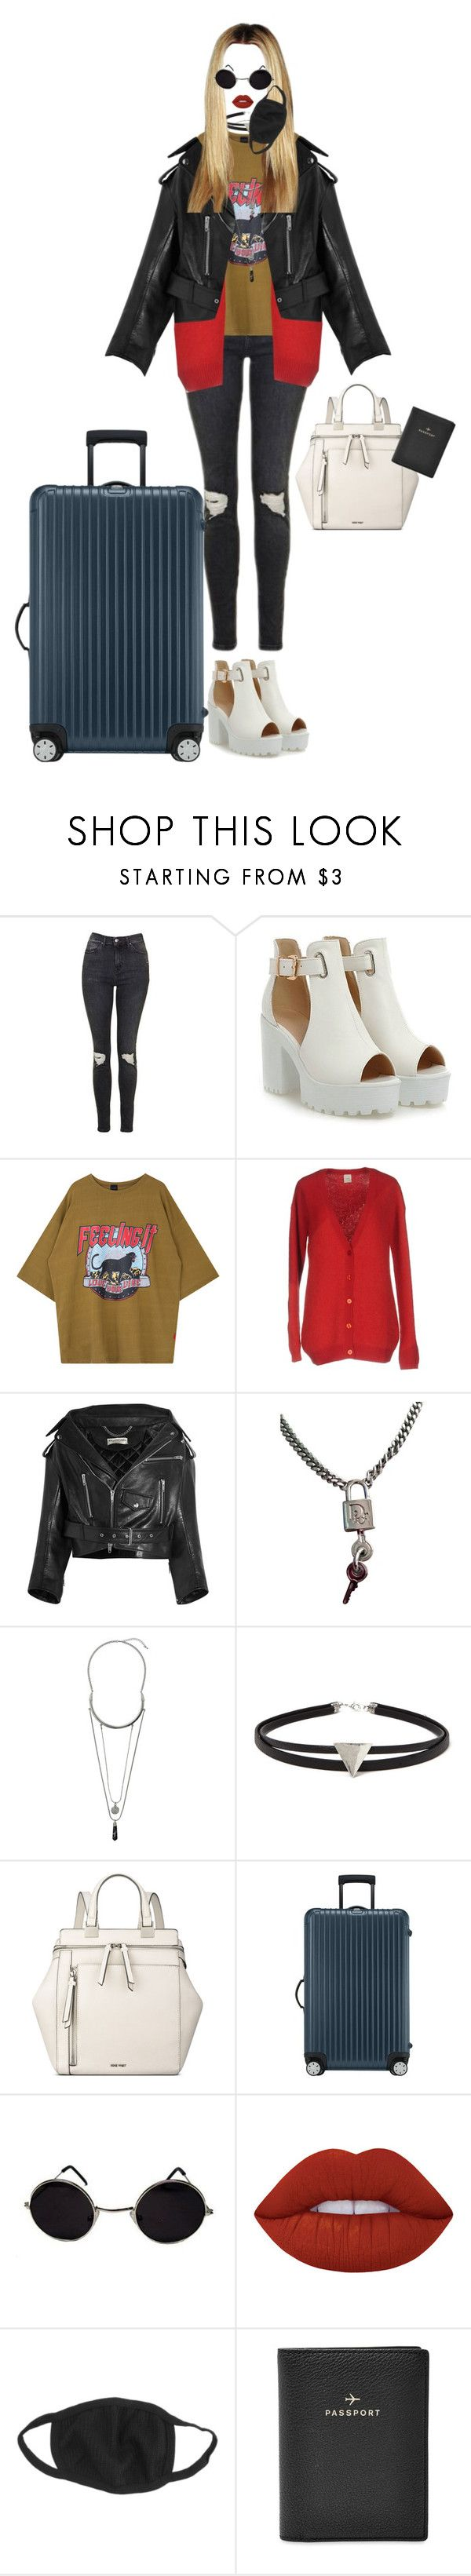 """[ fancam ] YeonA at Incheon Airport"" by xxeucliffexx ❤ liked on Polyvore featuring Topshop, Pinko, Balenciaga, Christian Dior, Forever 21, Nine West, Rimowa, Lime Crime, FOSSIL and gemini"